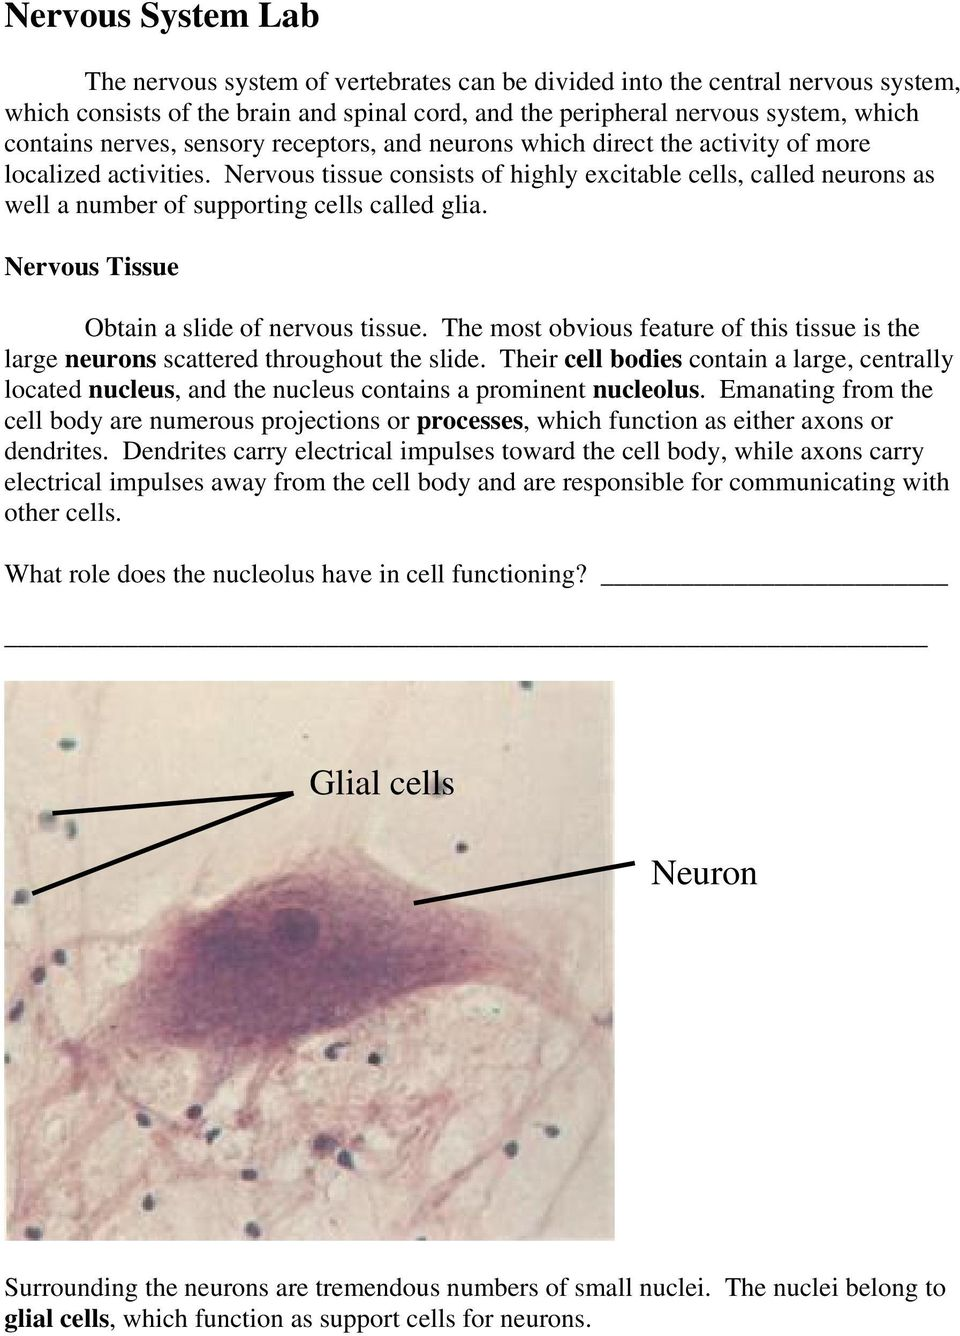 Nervous tissue consists of highly excitable cells, called neurons as well a number of supporting cells called glia. Nervous Tissue Obtain a slide of nervous tissue.